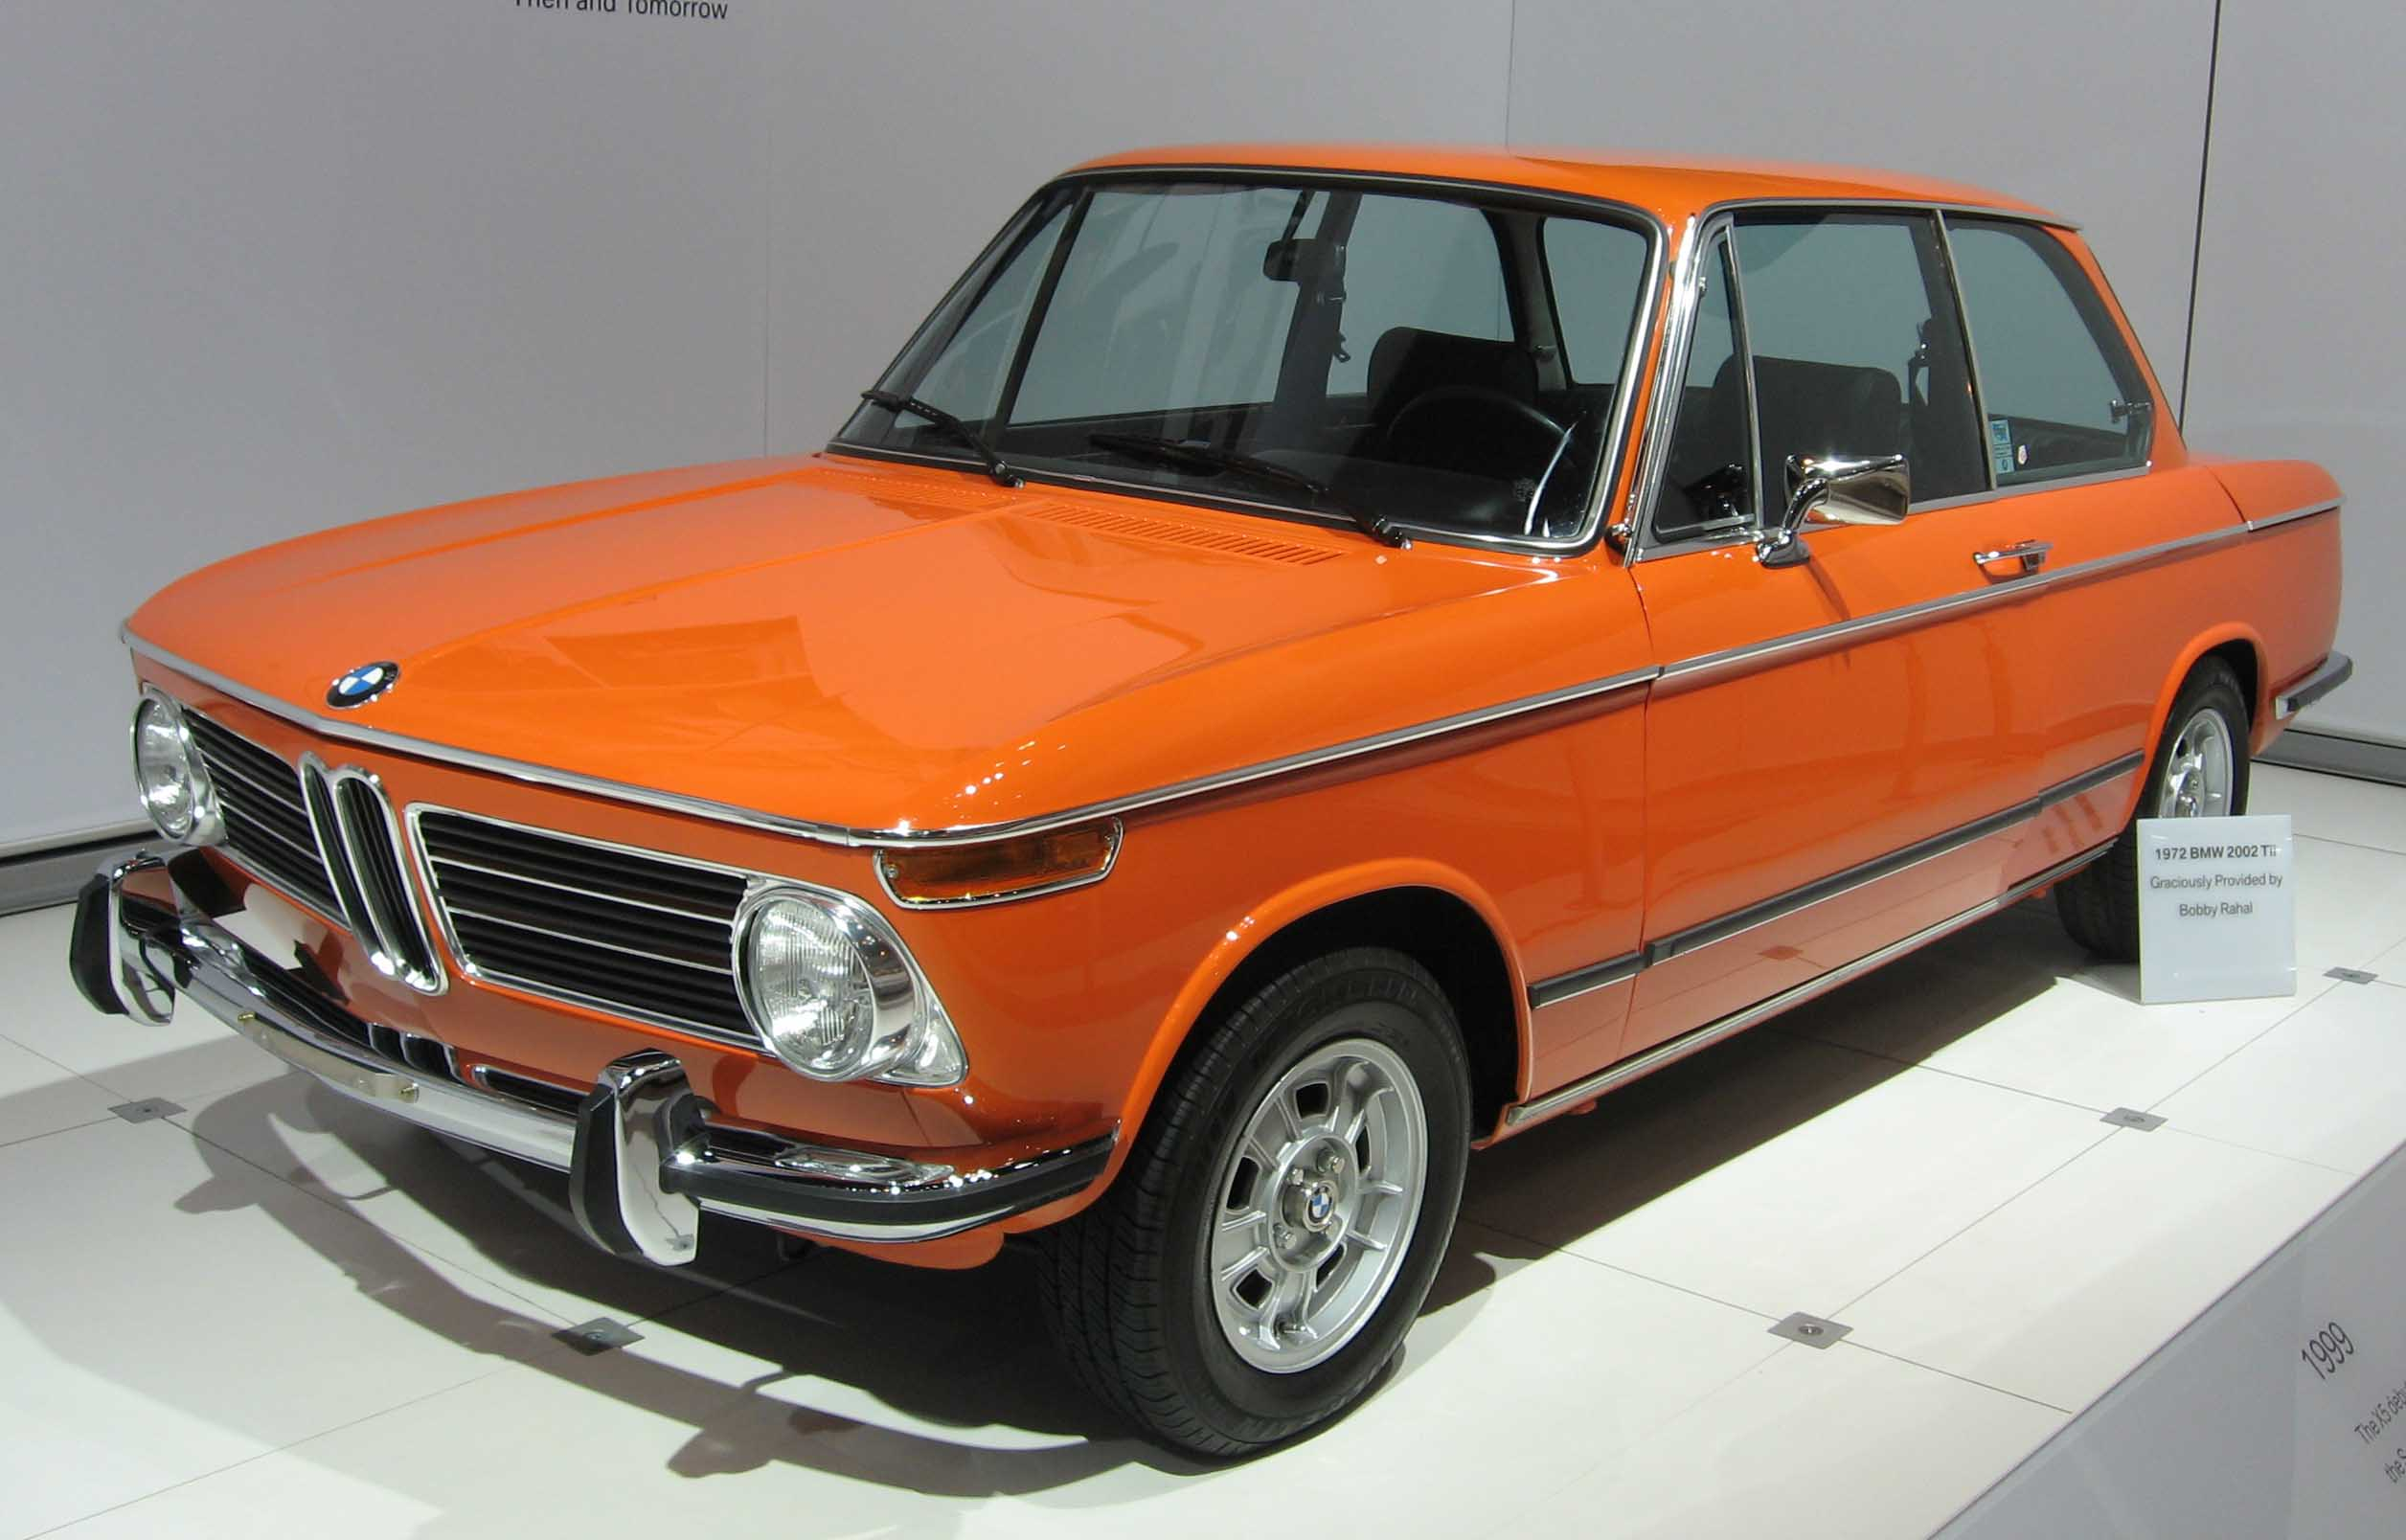 When the past becomes actual today with BMW 2002 1502 model #7